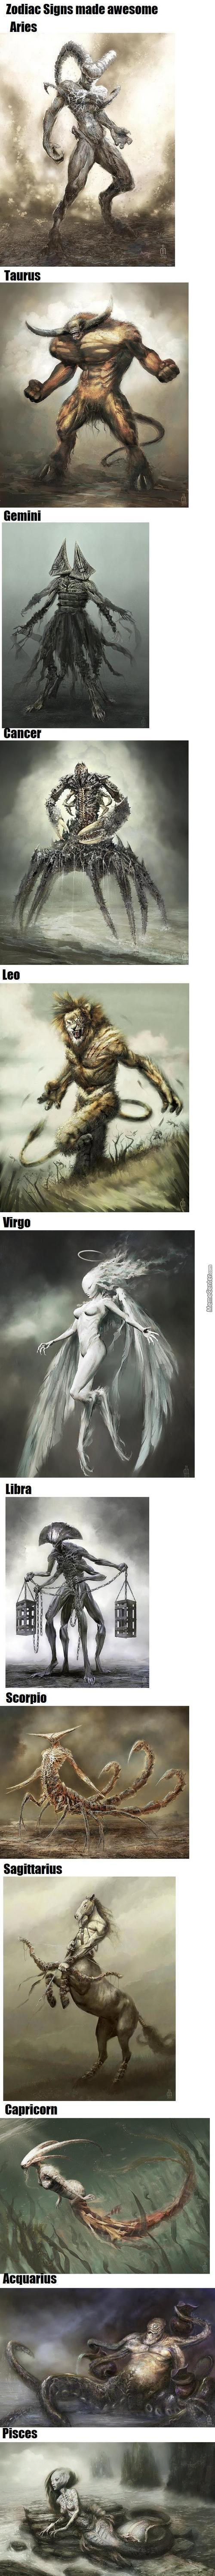 Zodiac Signs Made Epic